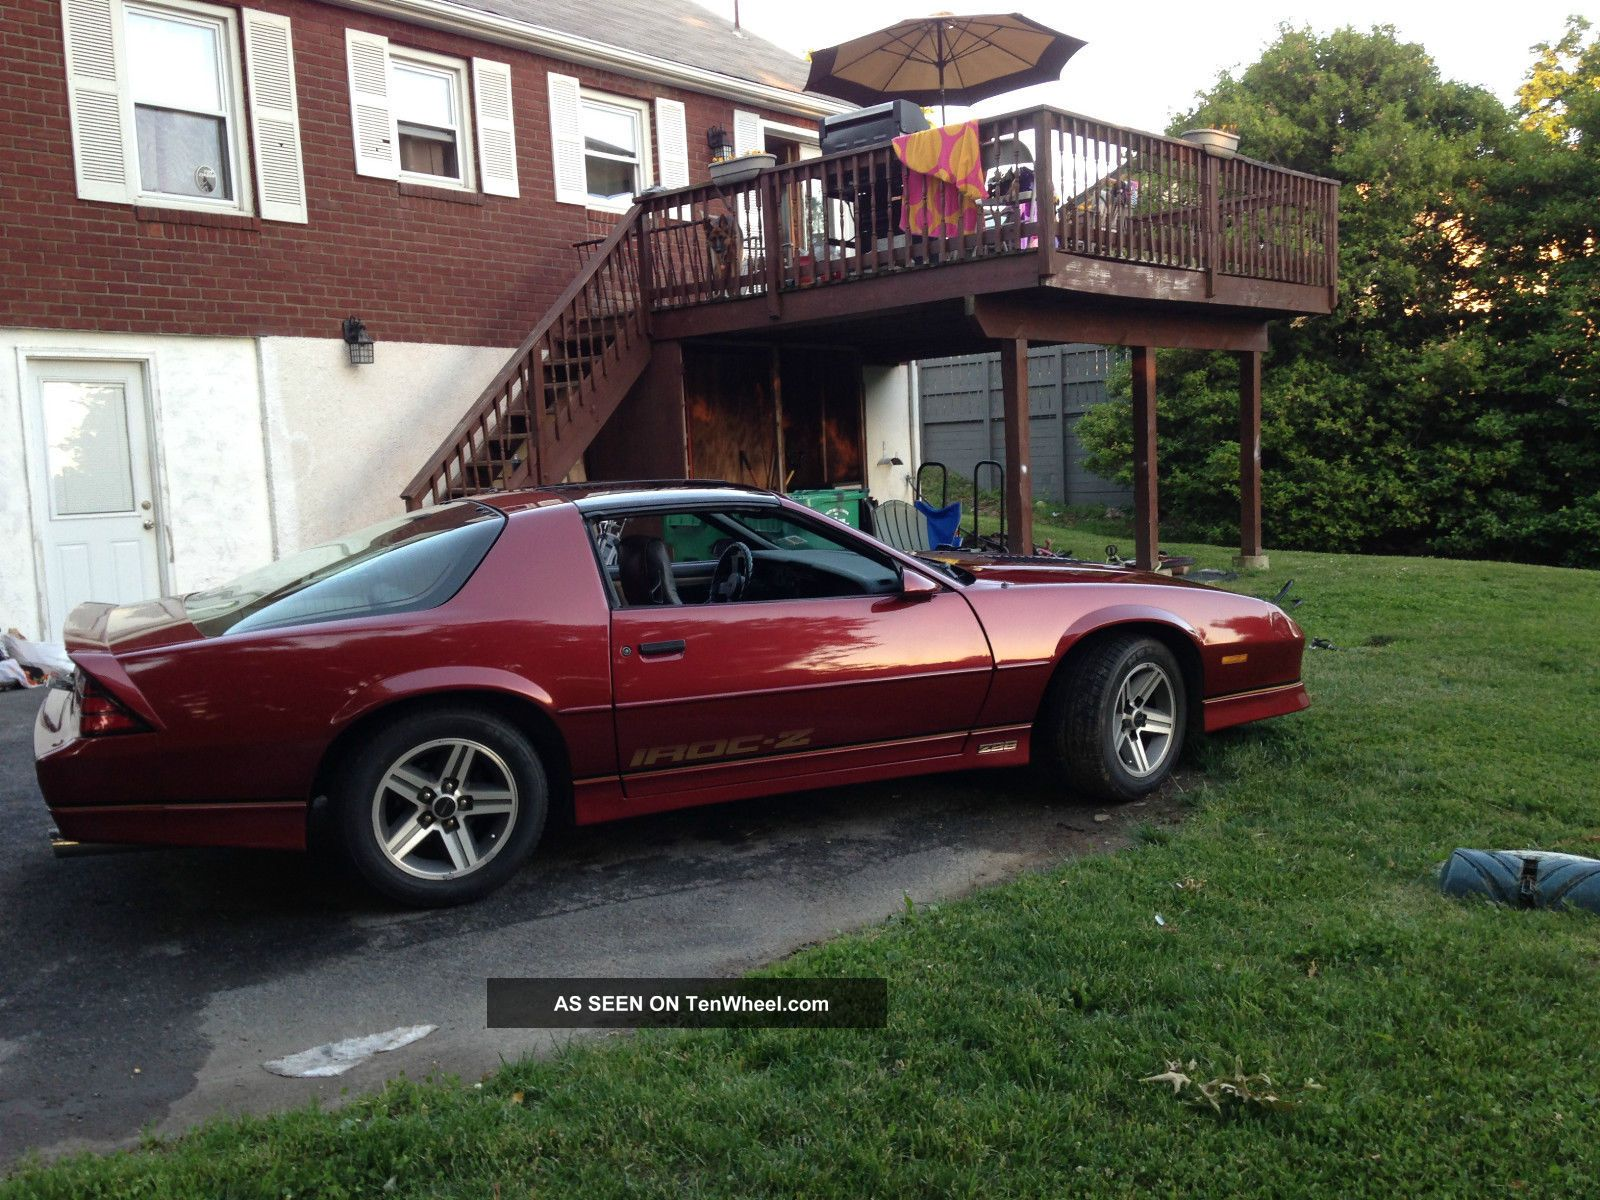 1987 chevrolet camaro z28 iroc z coupe 2 door 5 7l